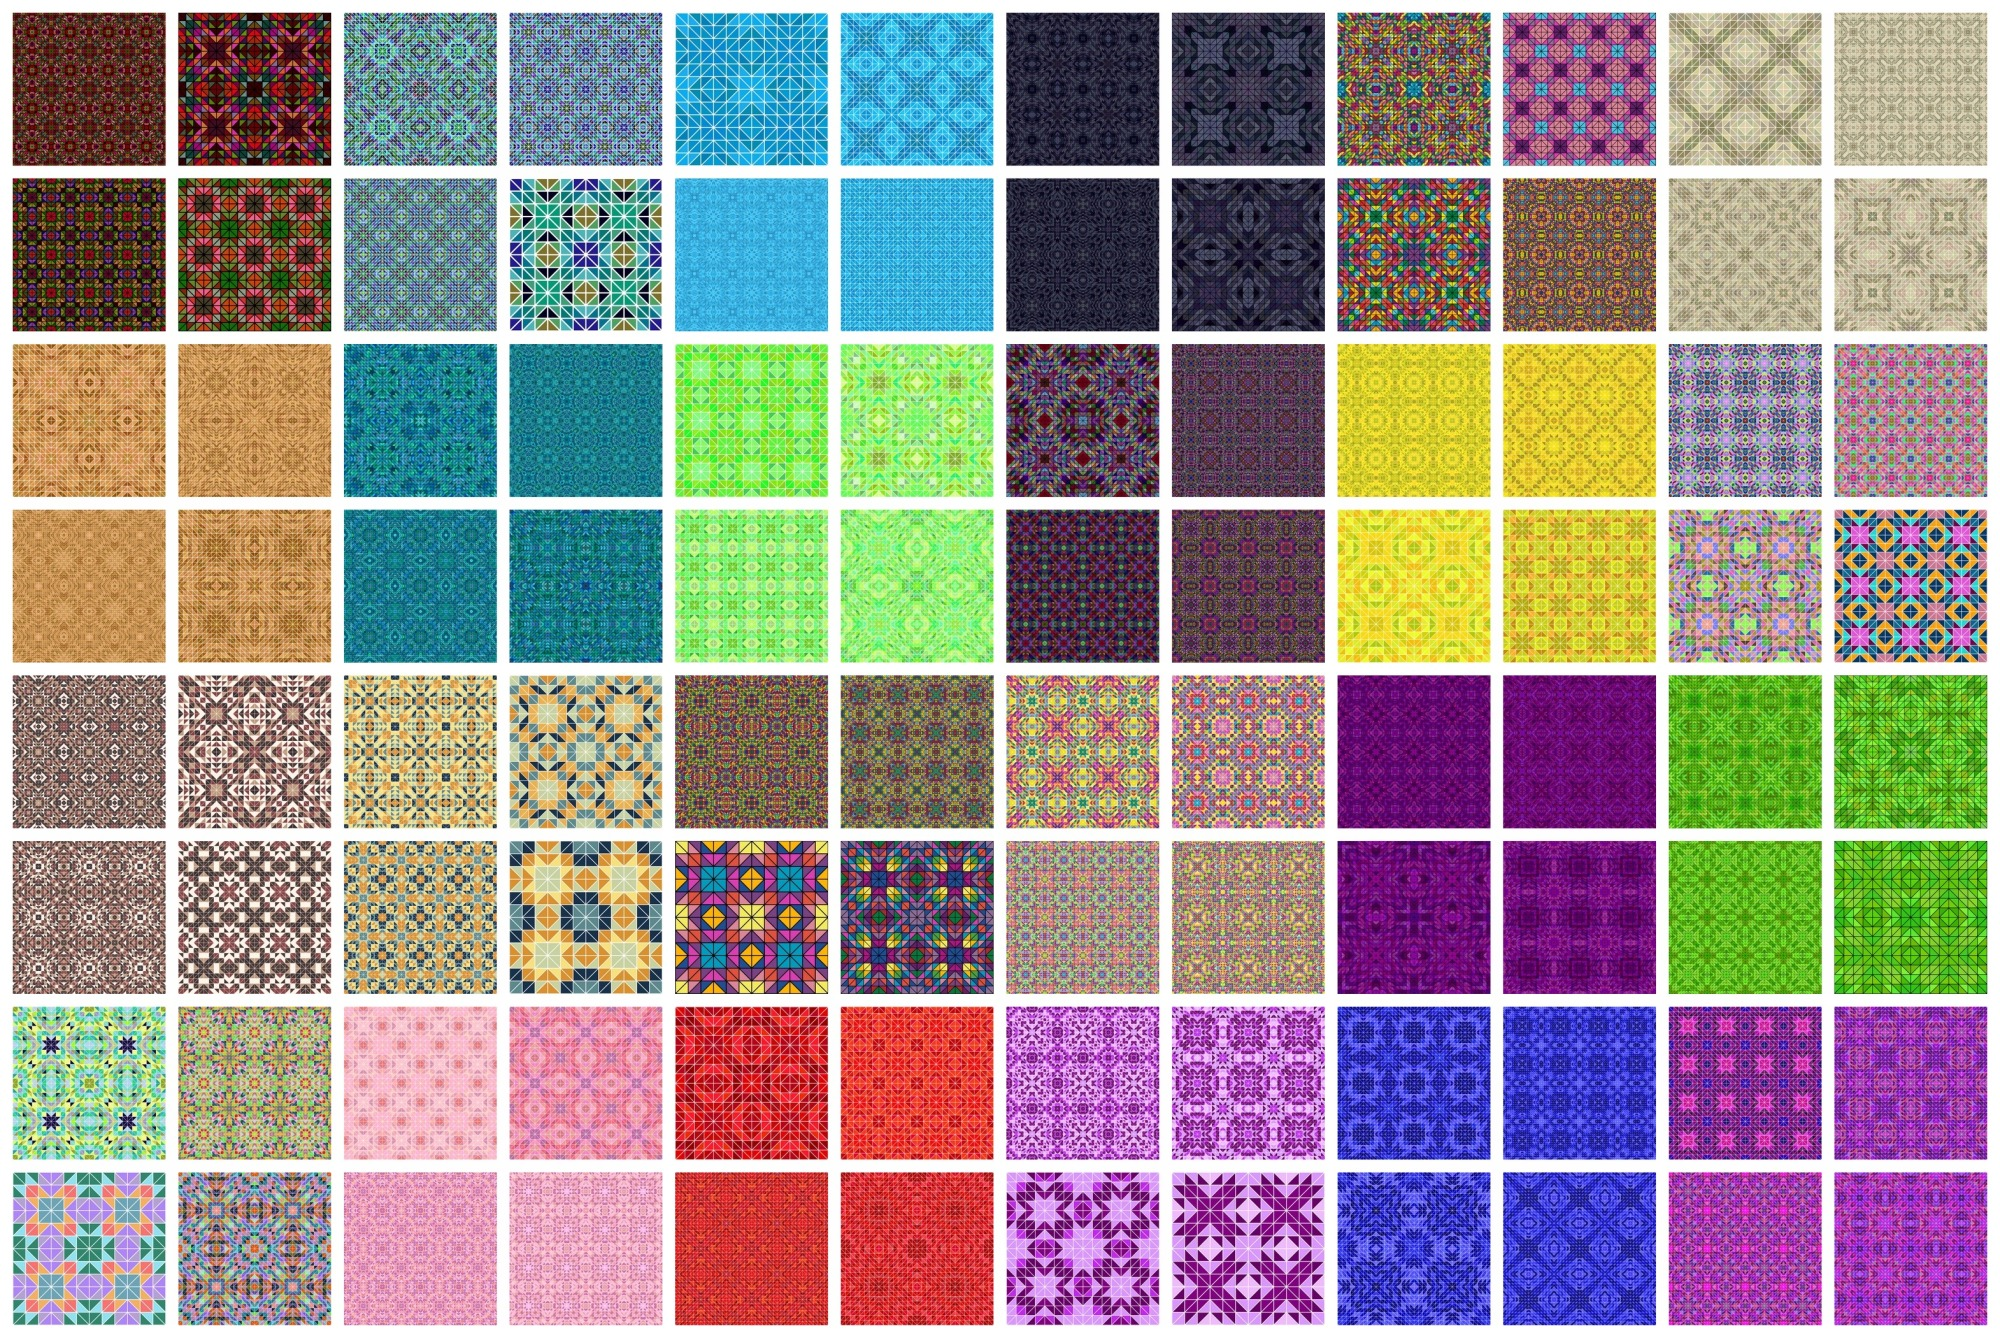 108 colorful seamless kaleidoscope triangle patterns (AI, EPS, JPG 5000x5000) example image 2